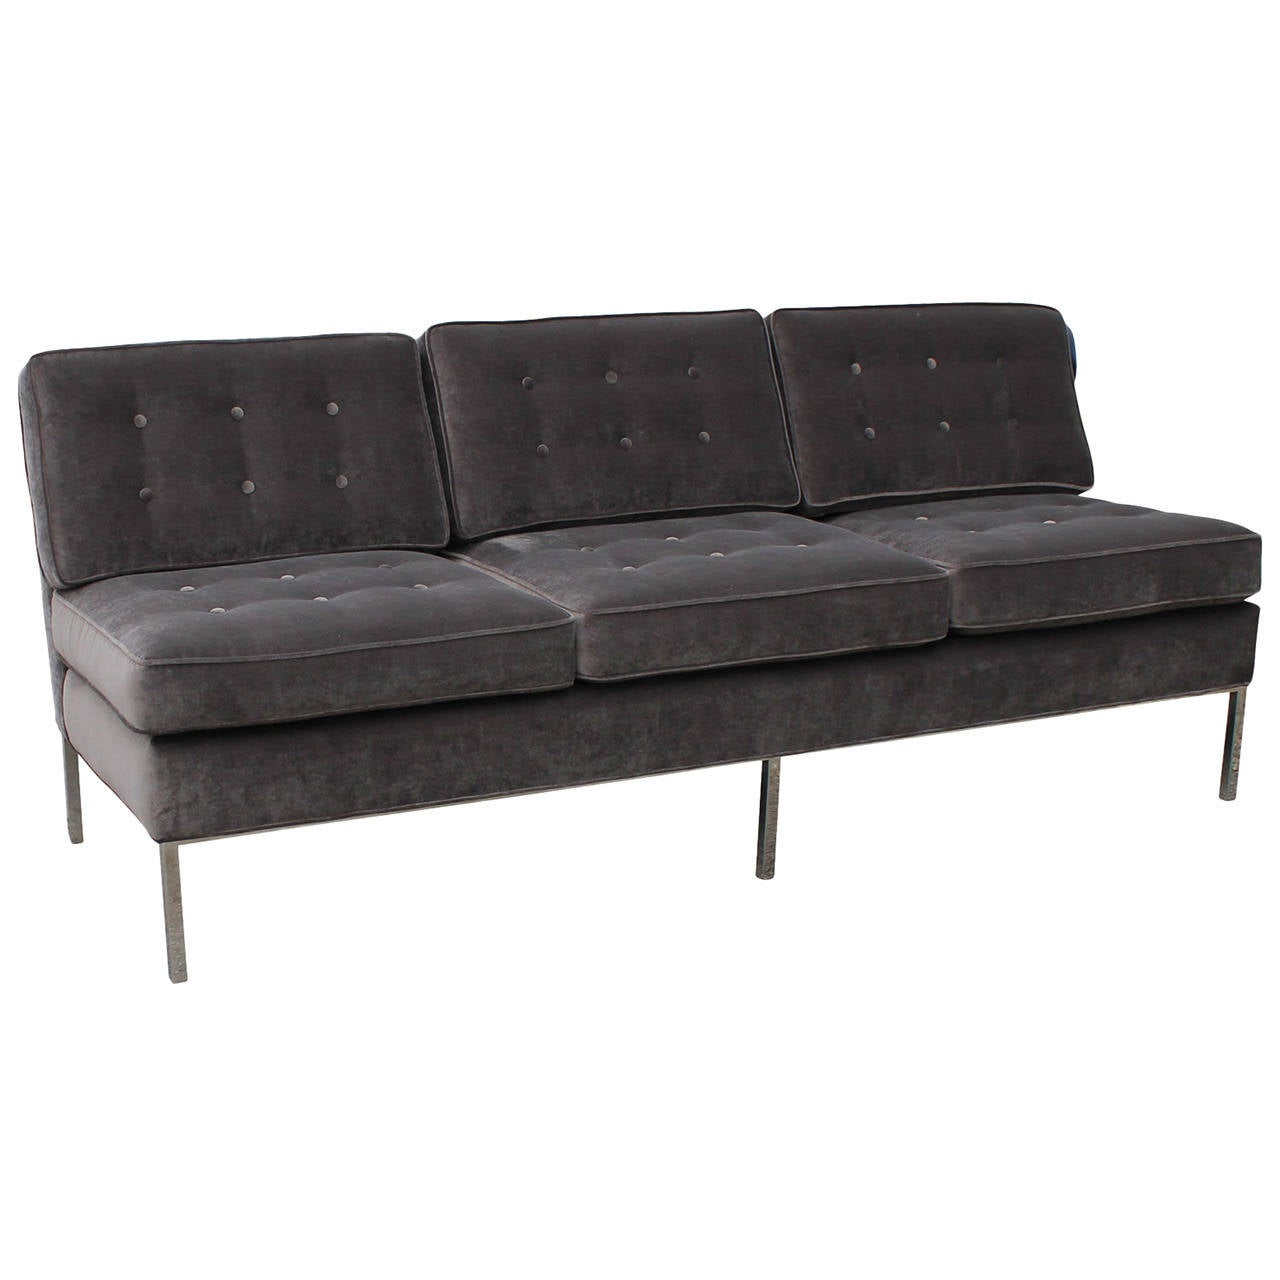 Plush Armless Grey Velvet And Chrome Sofa At 1stdibs